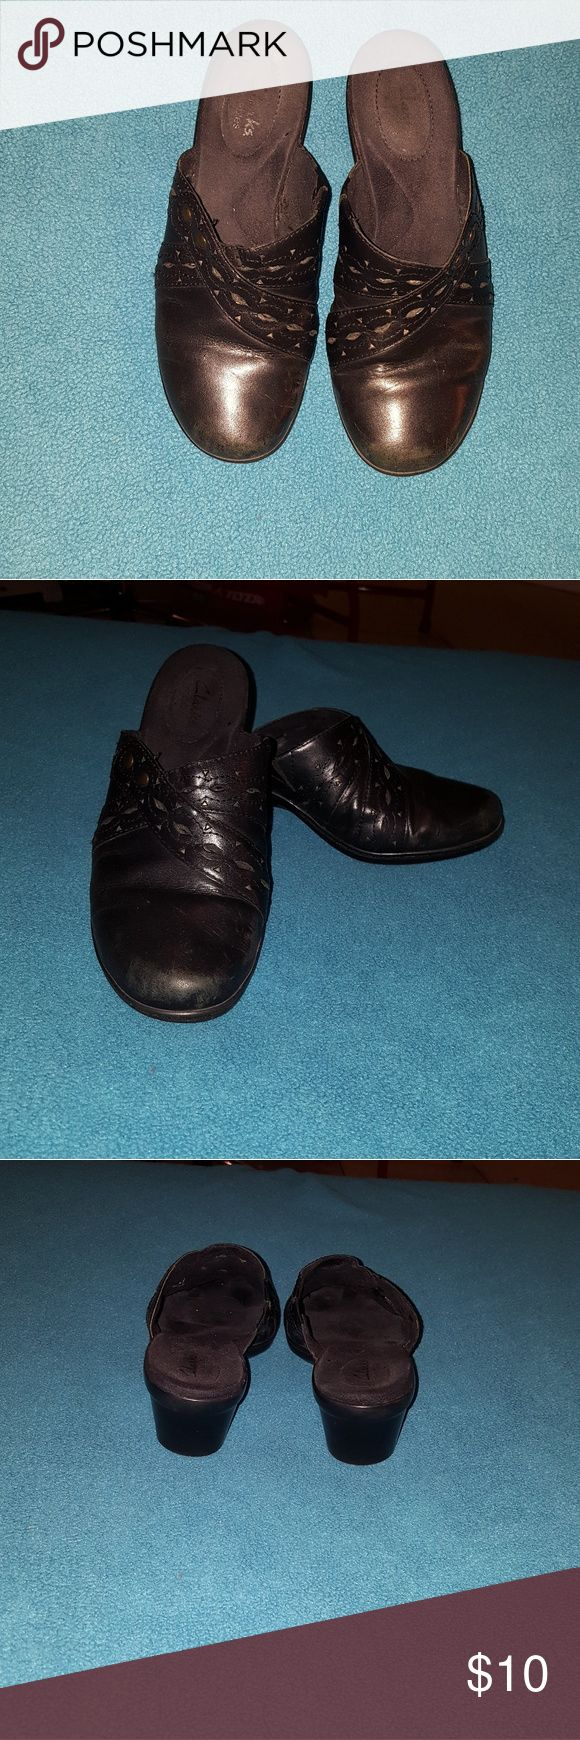 Women's mules Black leather, good condition Clarks Shoes